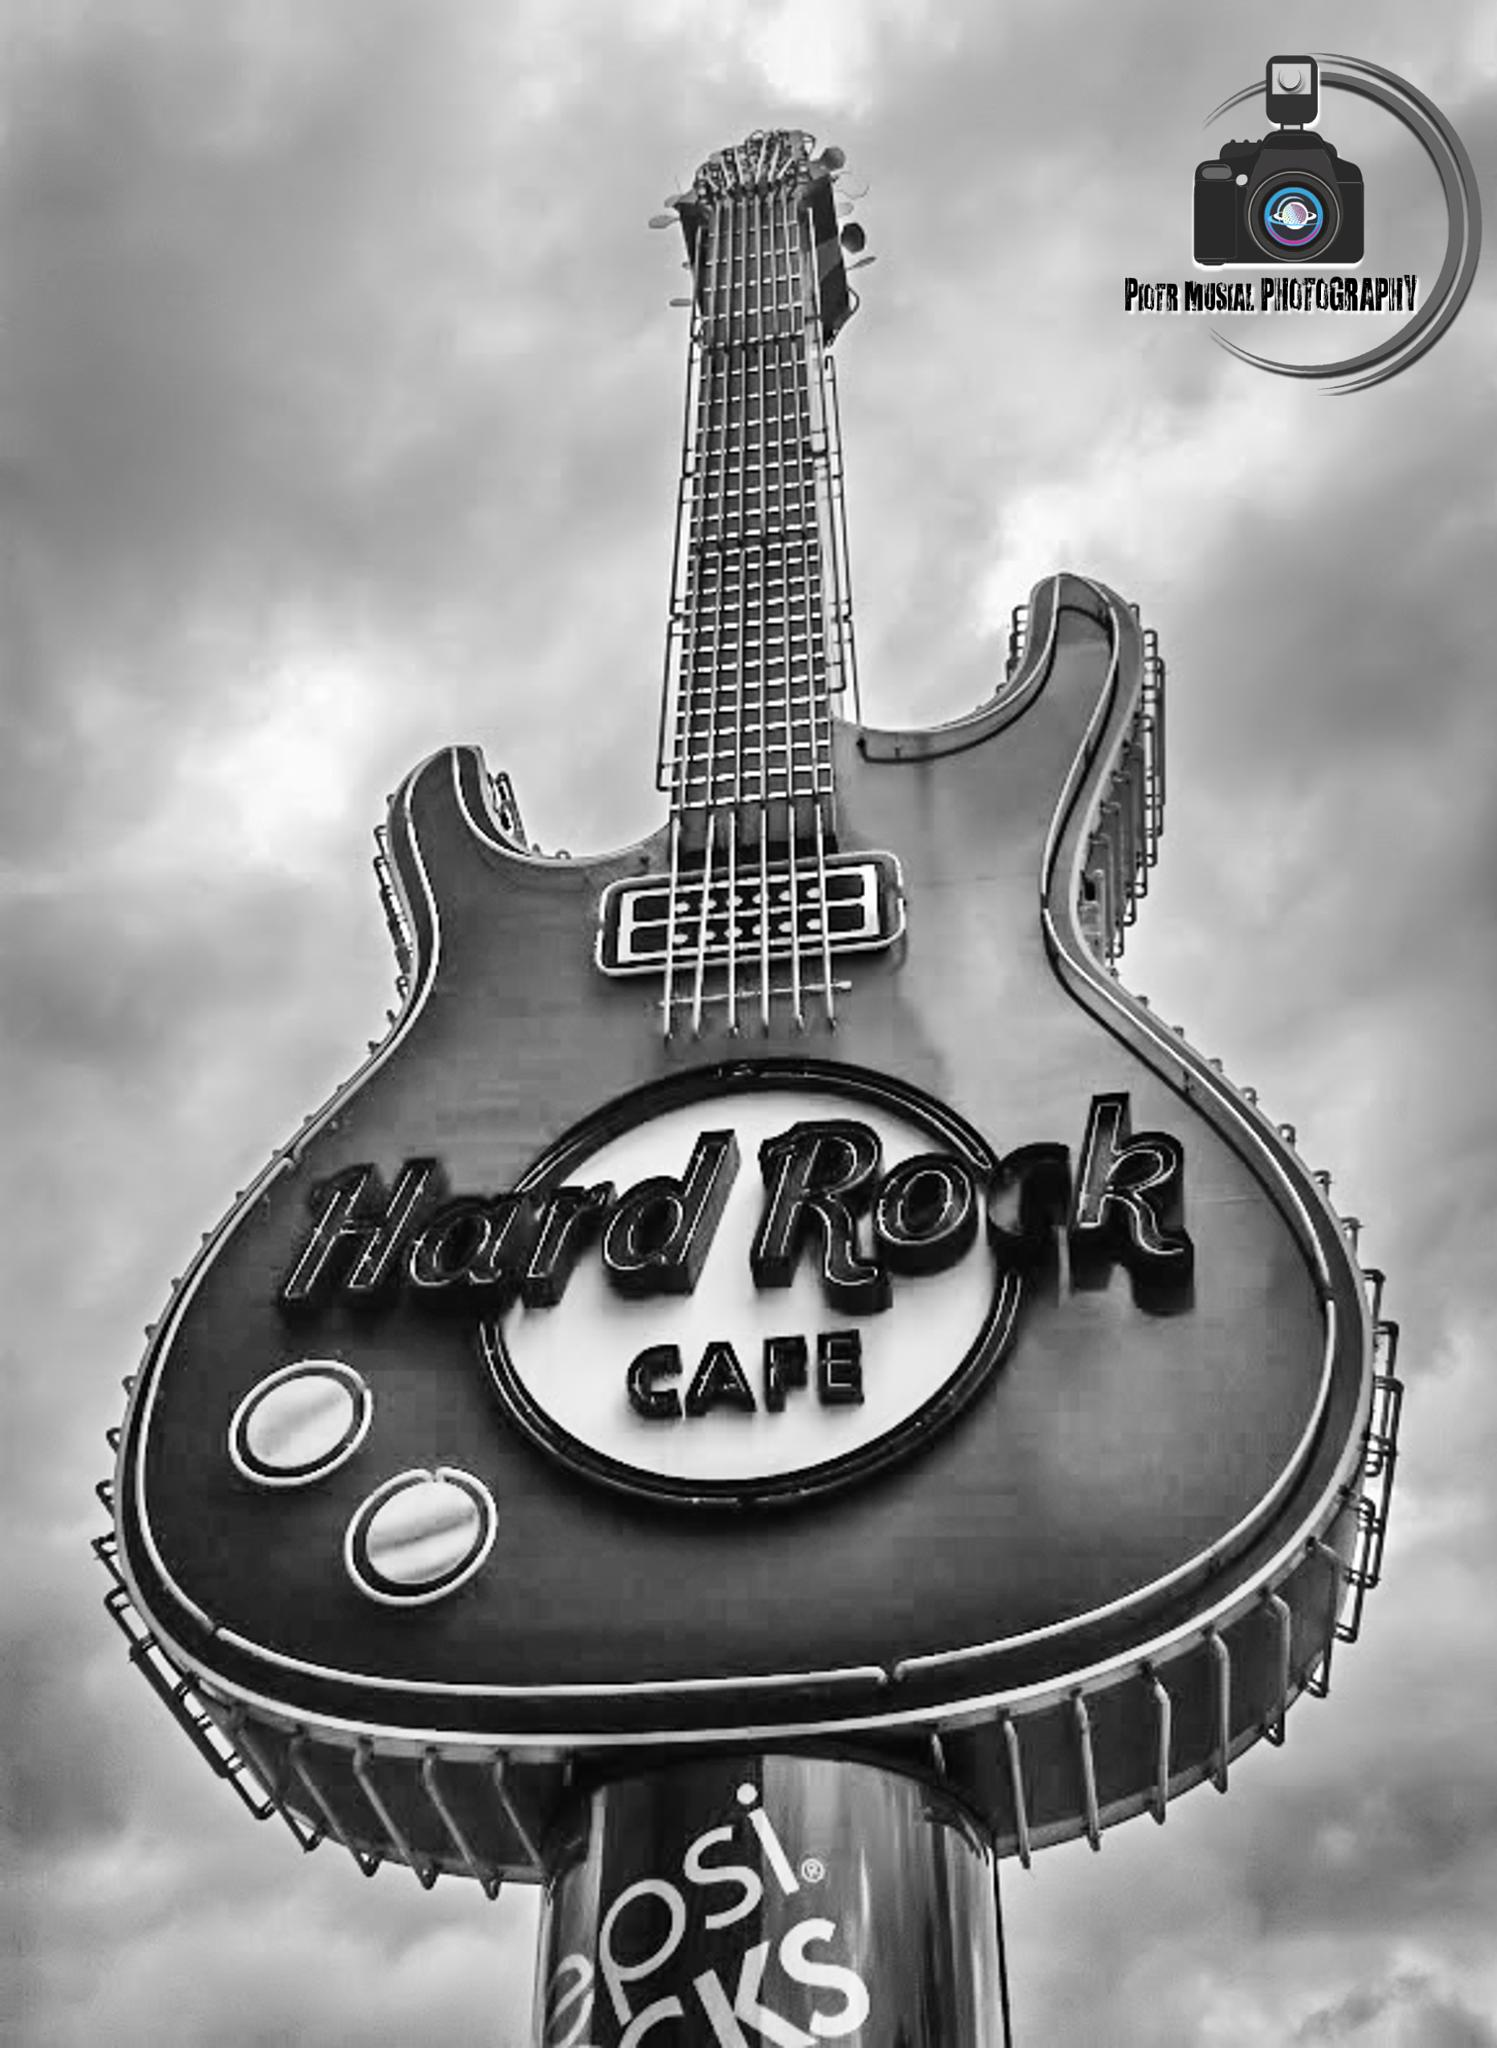 Hard Rock  by Piotr Musiał Photography